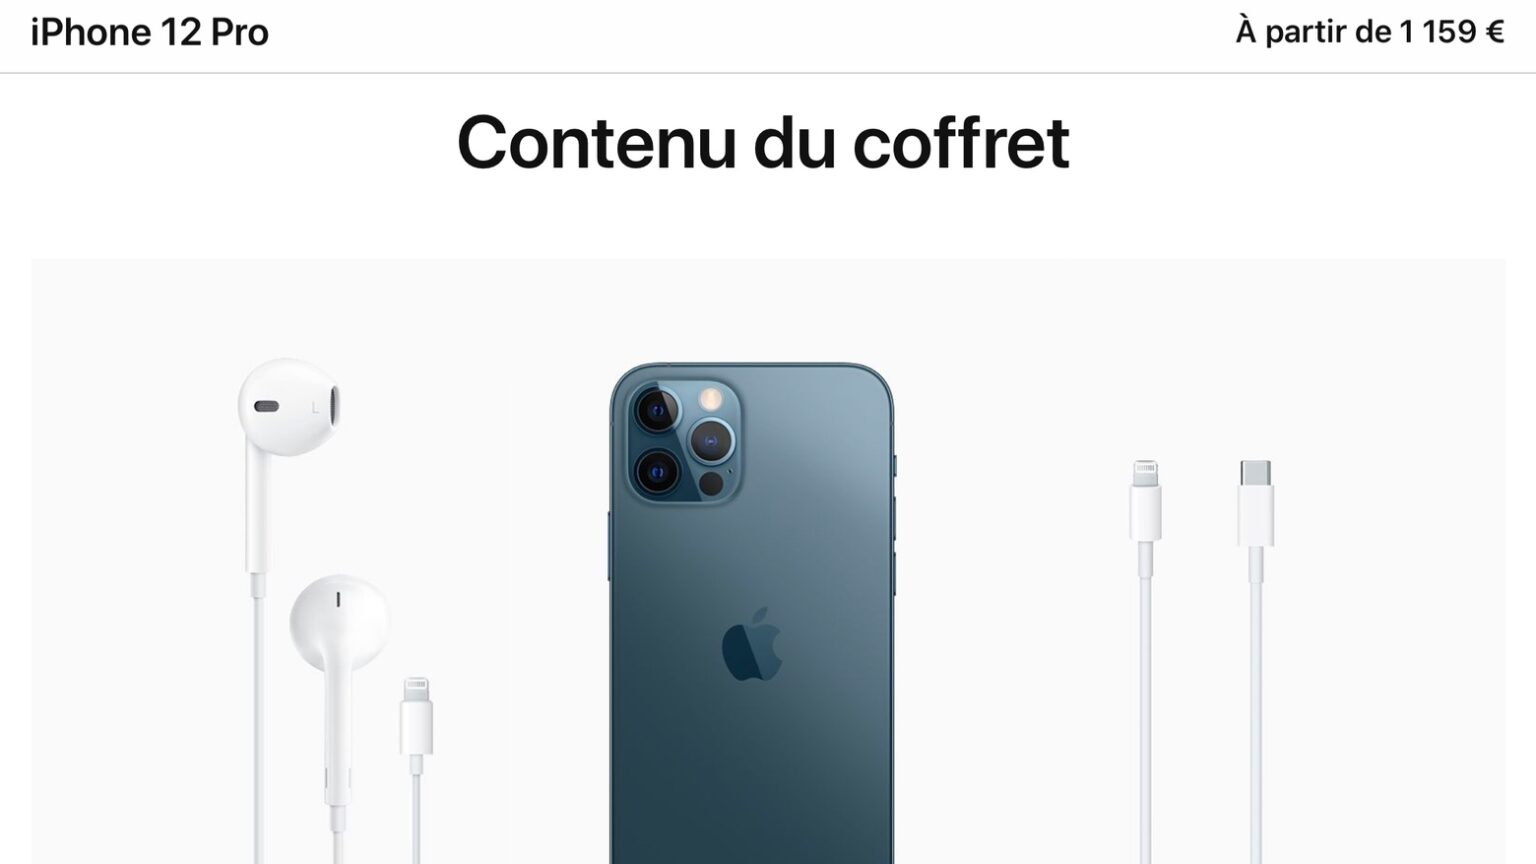 Free iPhone headphones are still a thing in France.